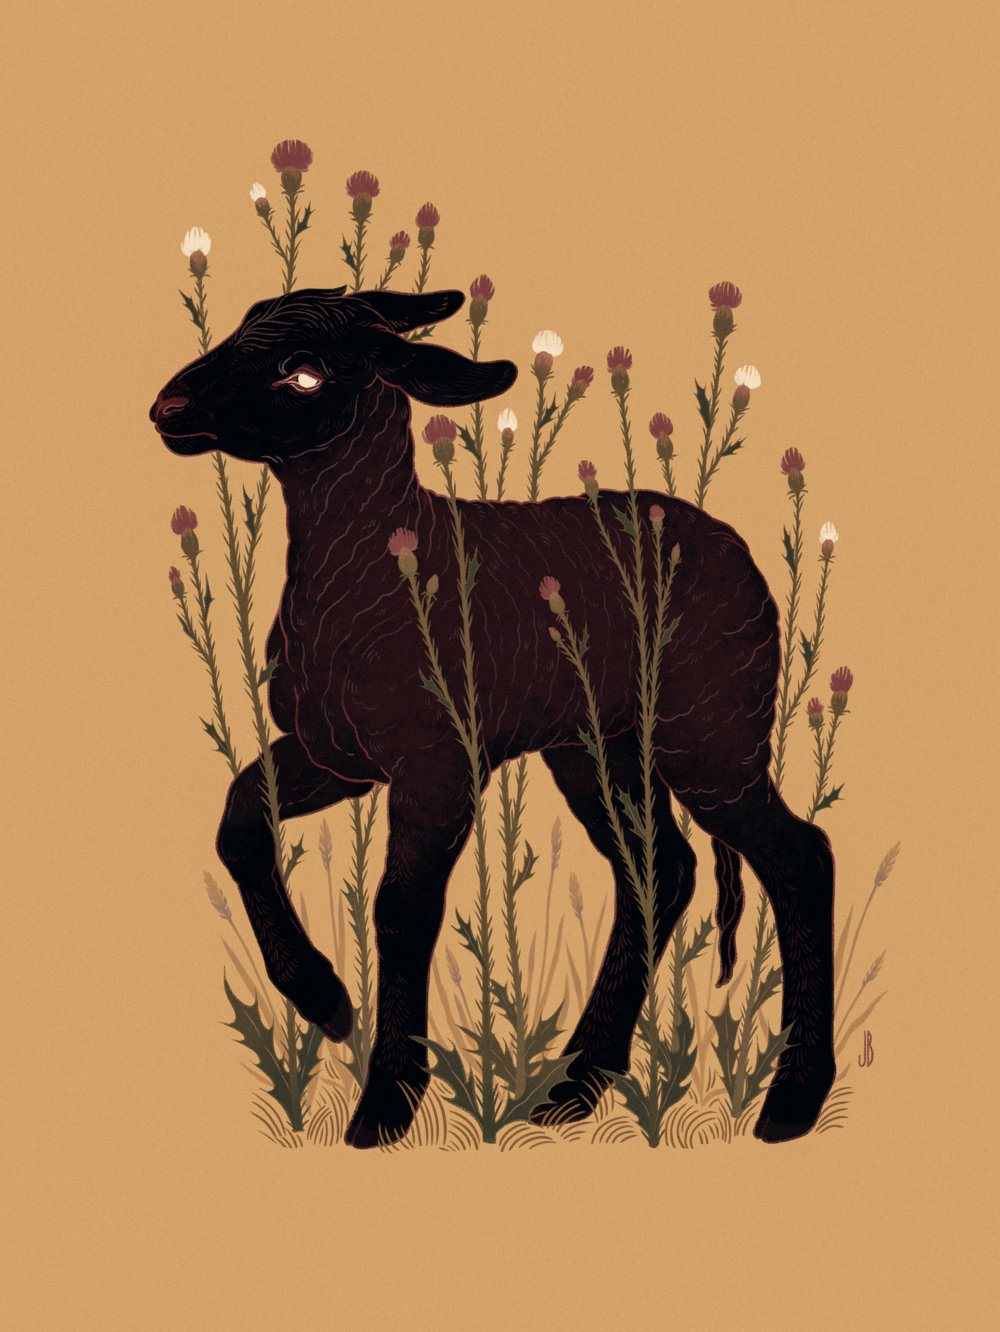 Mysterious And Shadowy Animal Illustrations By Jenna Barton 6